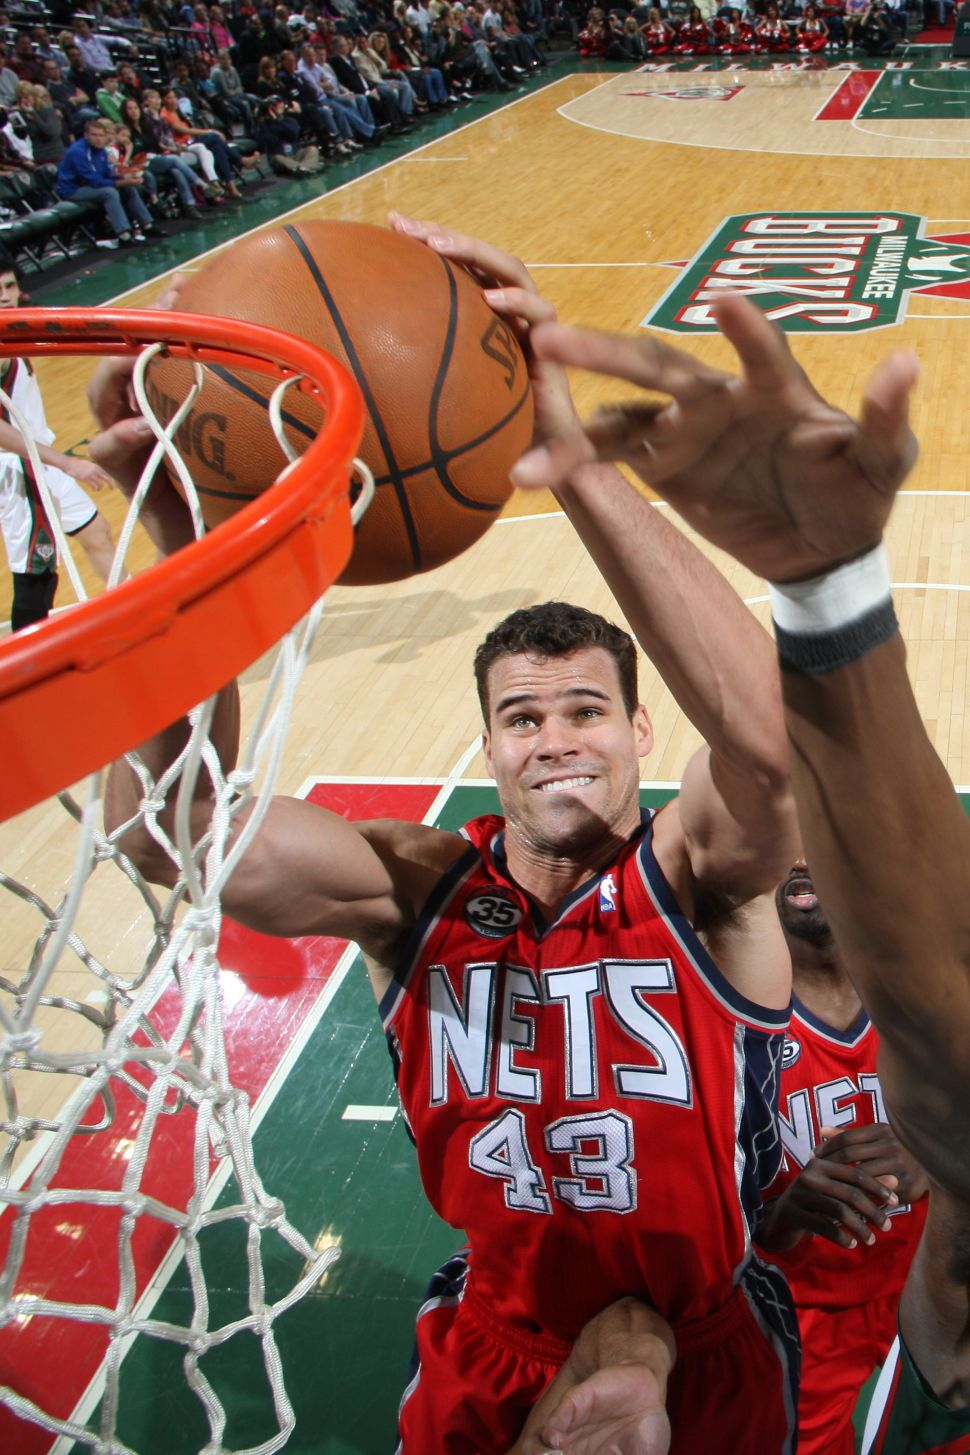 Kris Humphries' $24 Million Payday With Brooklyn Nets Causing Him to Self-Destruct